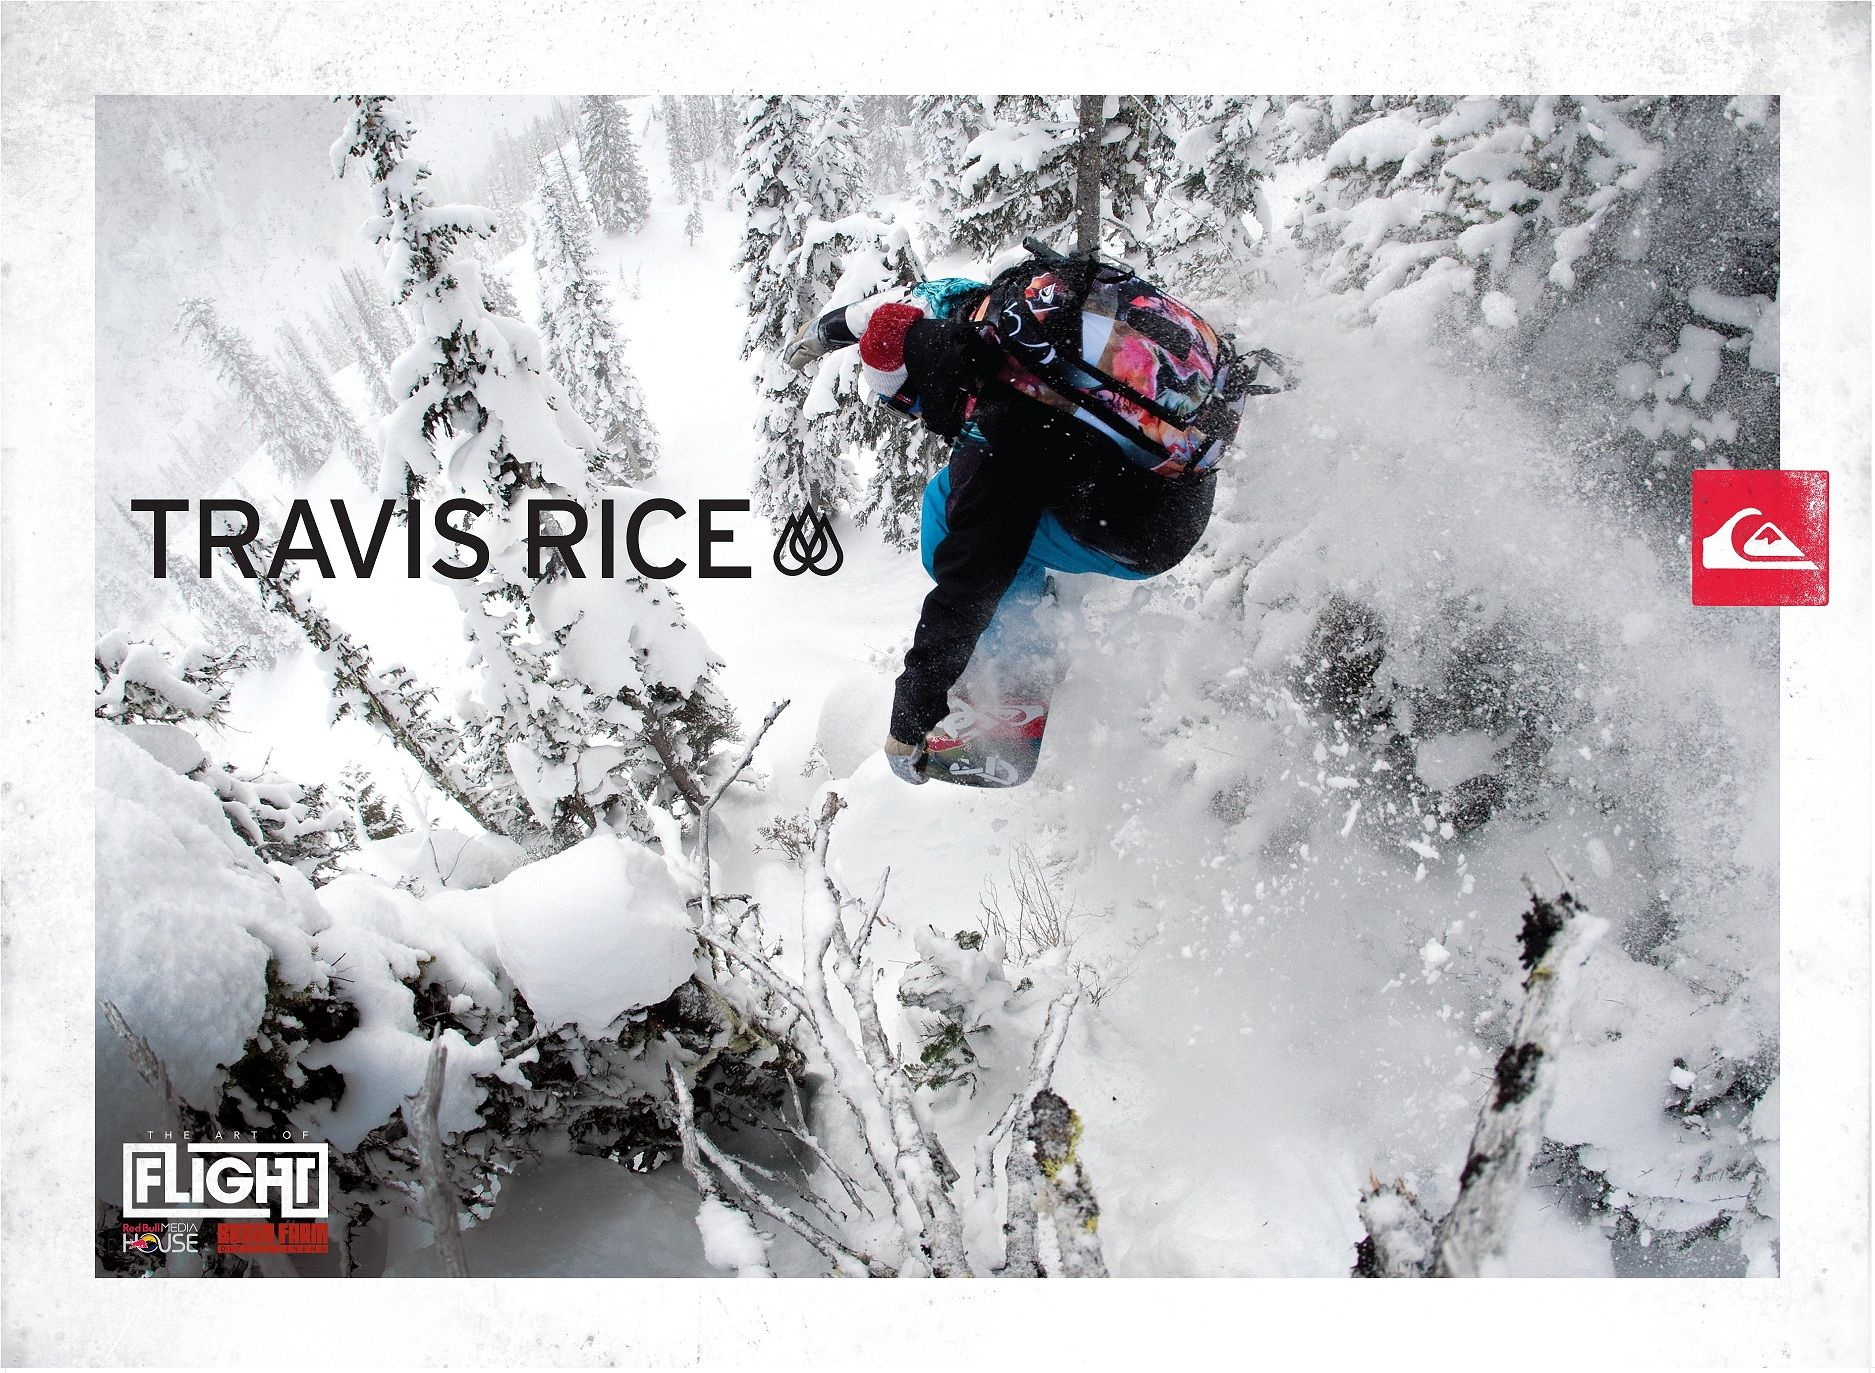 Travis Rice Wallpaper Awesome Travis Rice The Art Of Flight Wallpaper Snow Surfing Snowboarding Travis Rice